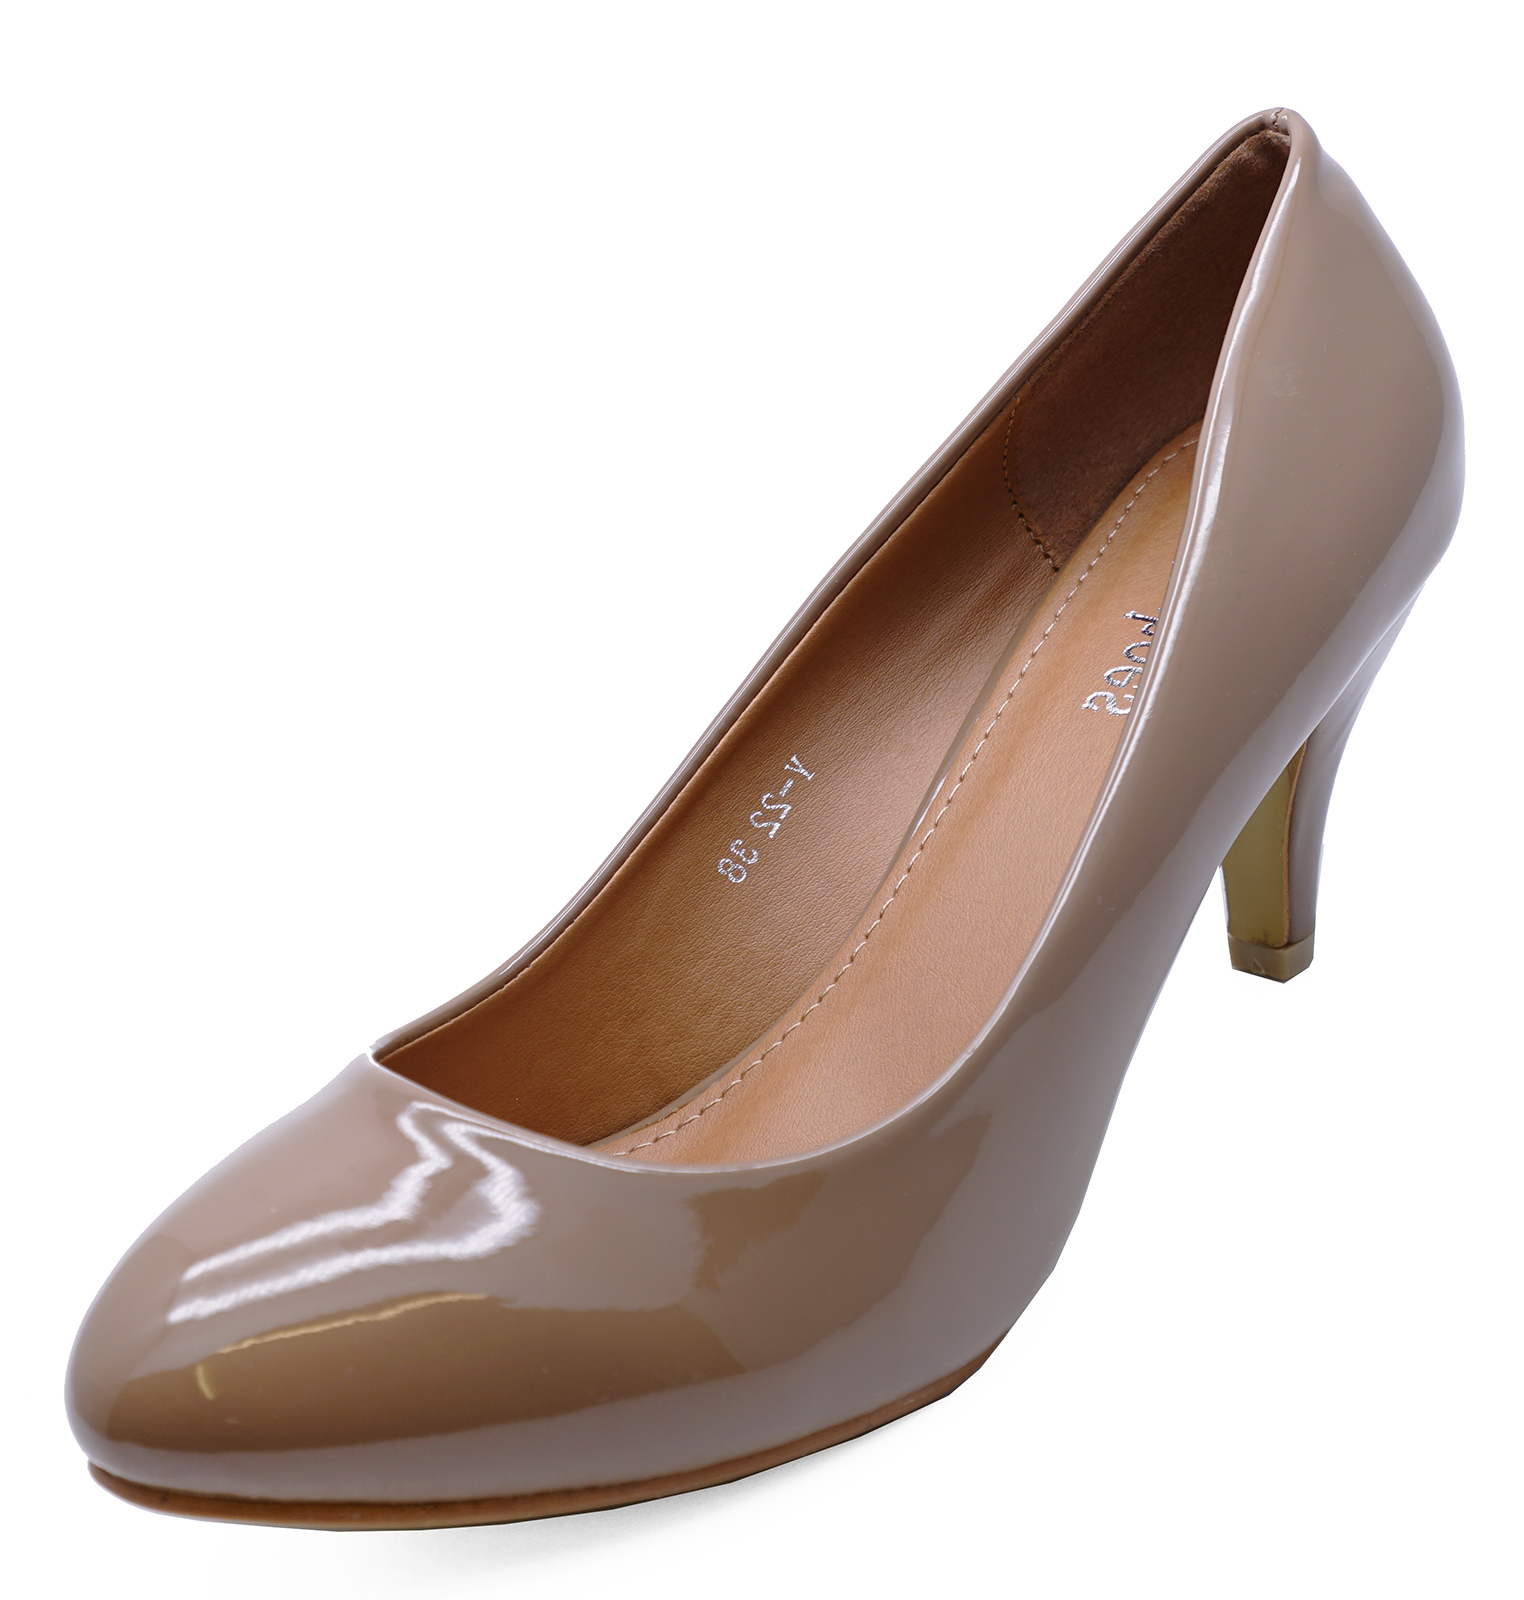 WOMENS TAUPE SLIP-ON SMART CASUAL COURT SECRETARY COMFY SHOES SIZES 3-8